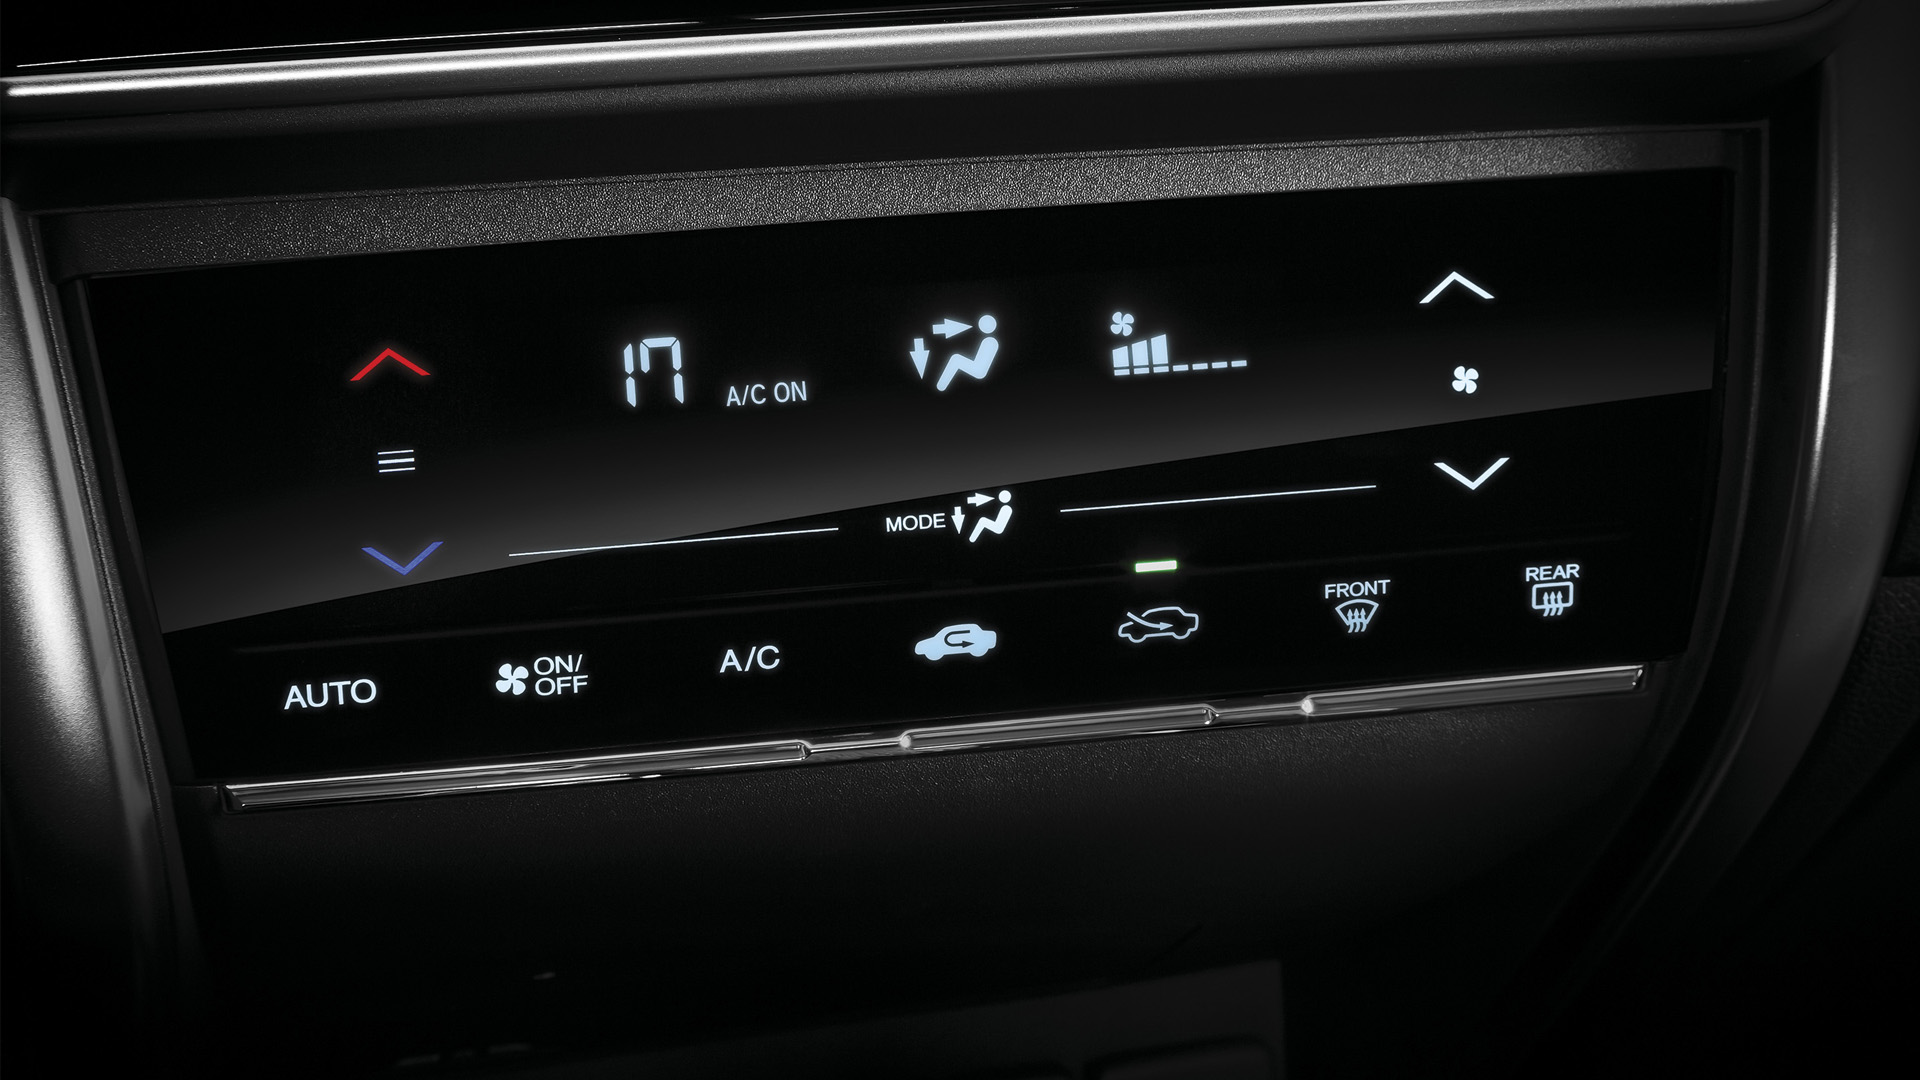 Honda City - Ar-condicionado digital full touchscreen